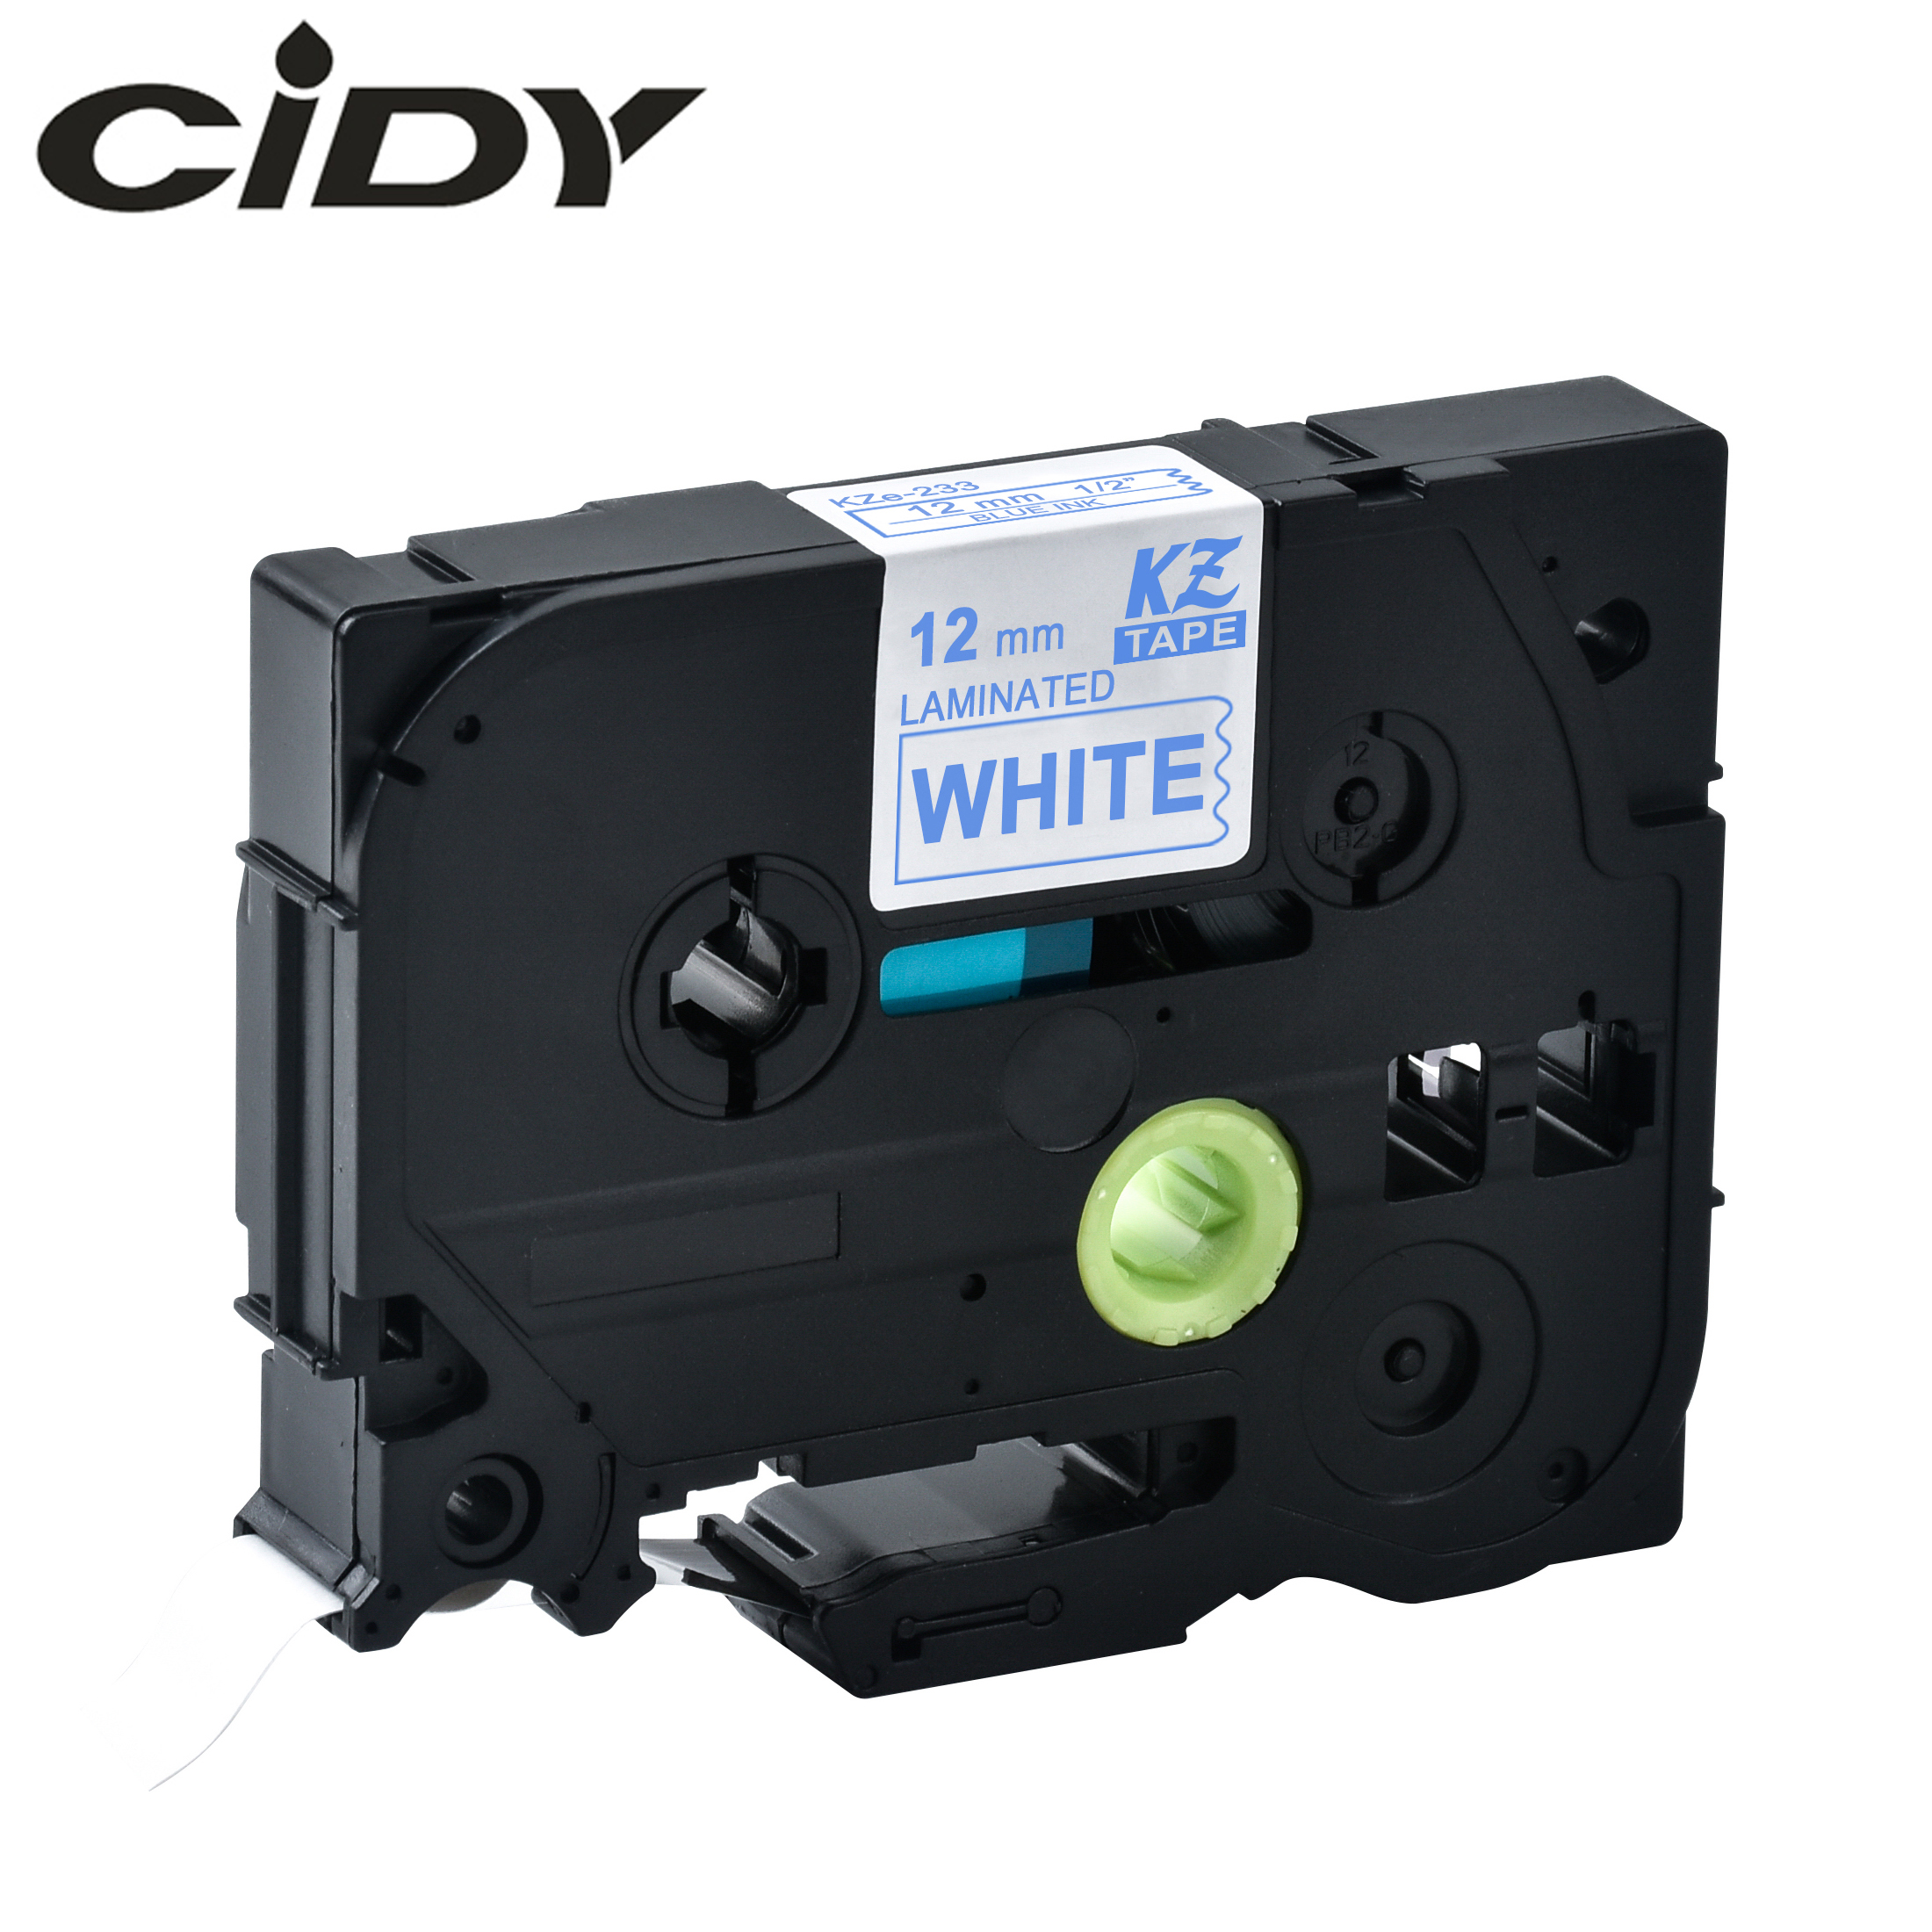 CIDY  Tze 233 Tz233 Blue On White Laminated Compatible P Touch 12mm Tze-233 Tz-233 Tze233 Label Tape Cassette Cartridge